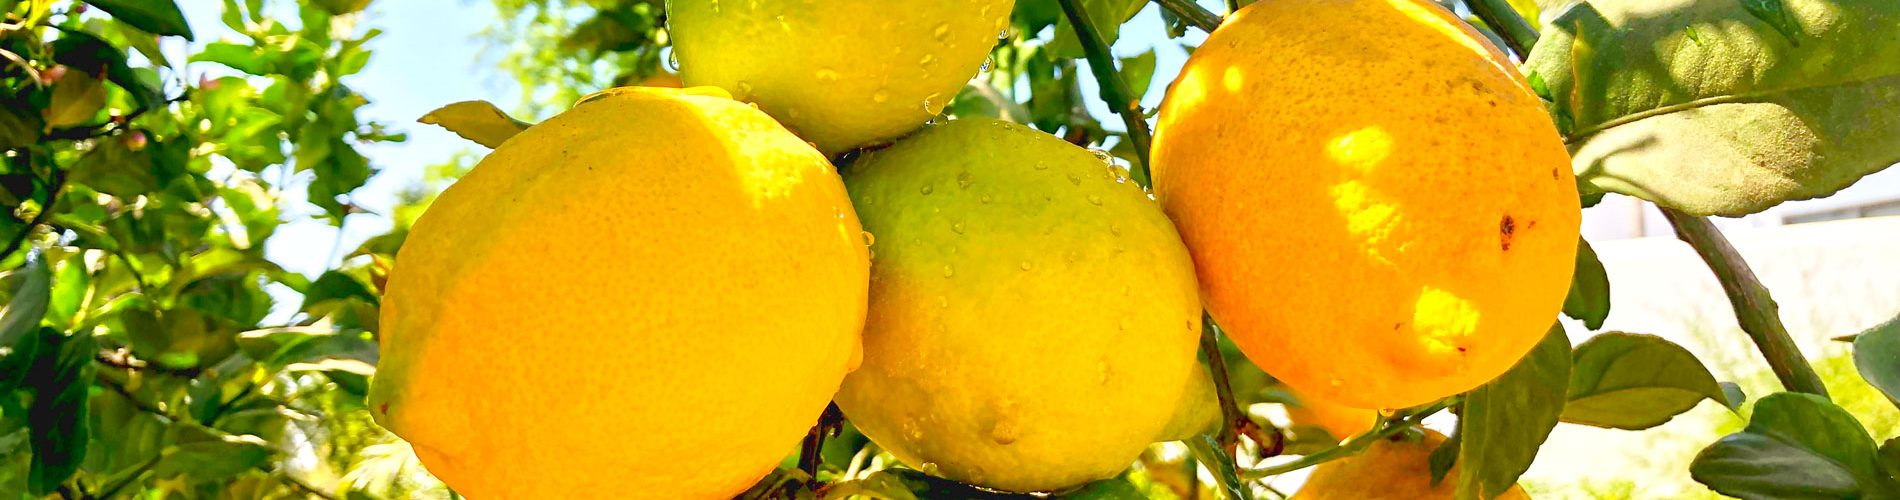 Limoncello-header